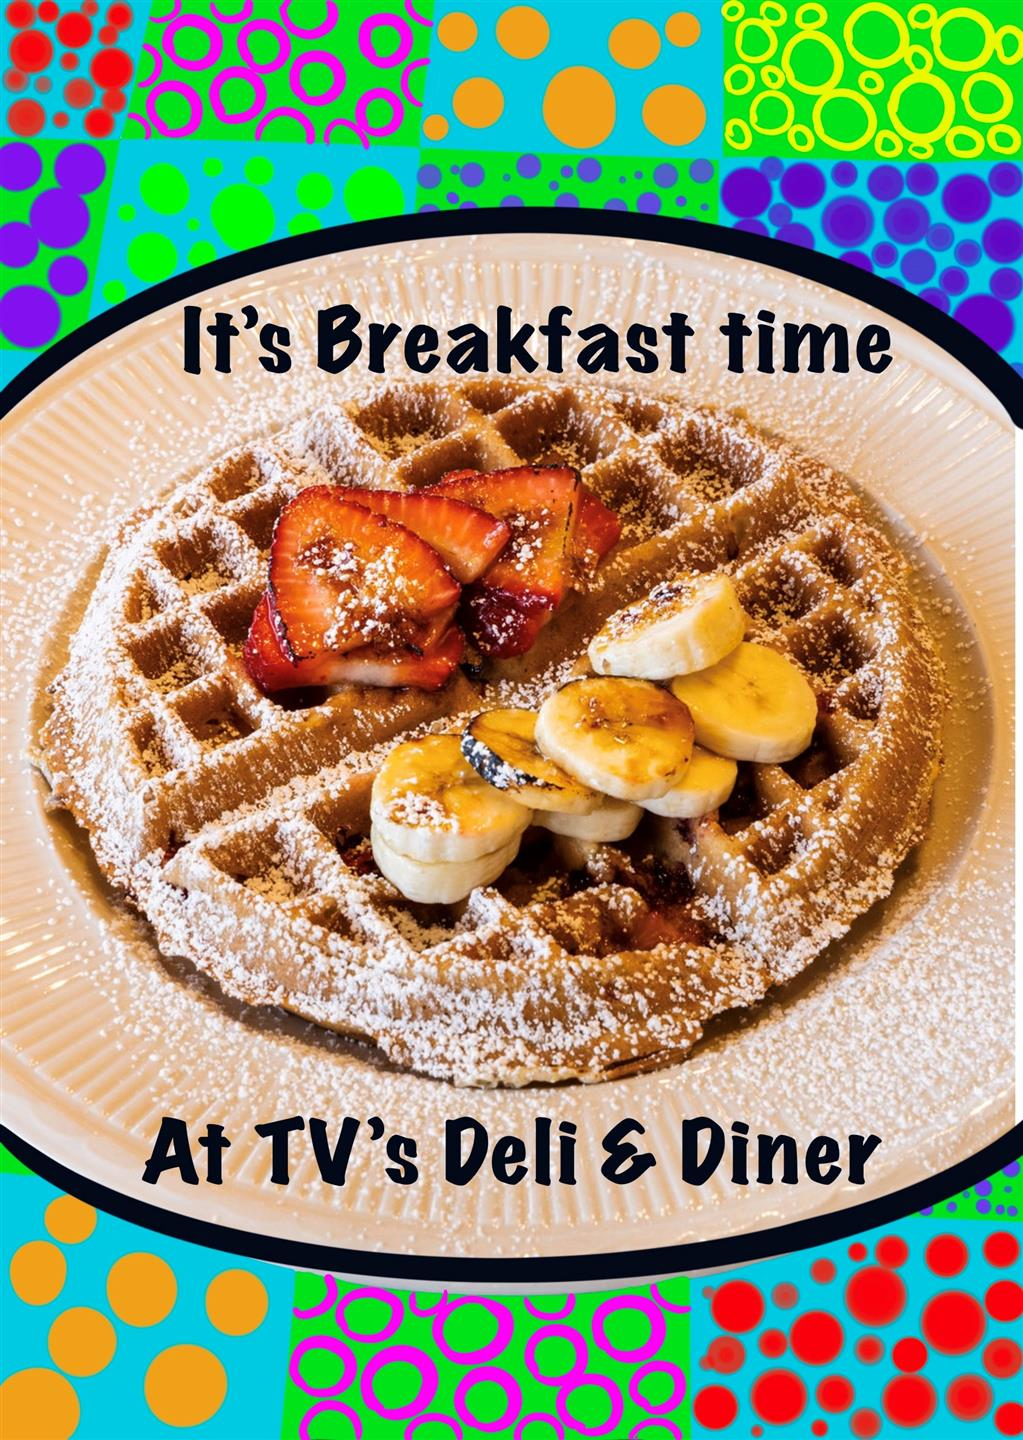 "a waffle on a plate with strawberries and bananas with the text ""It's breakfast time at TV's Deli & Diner"""